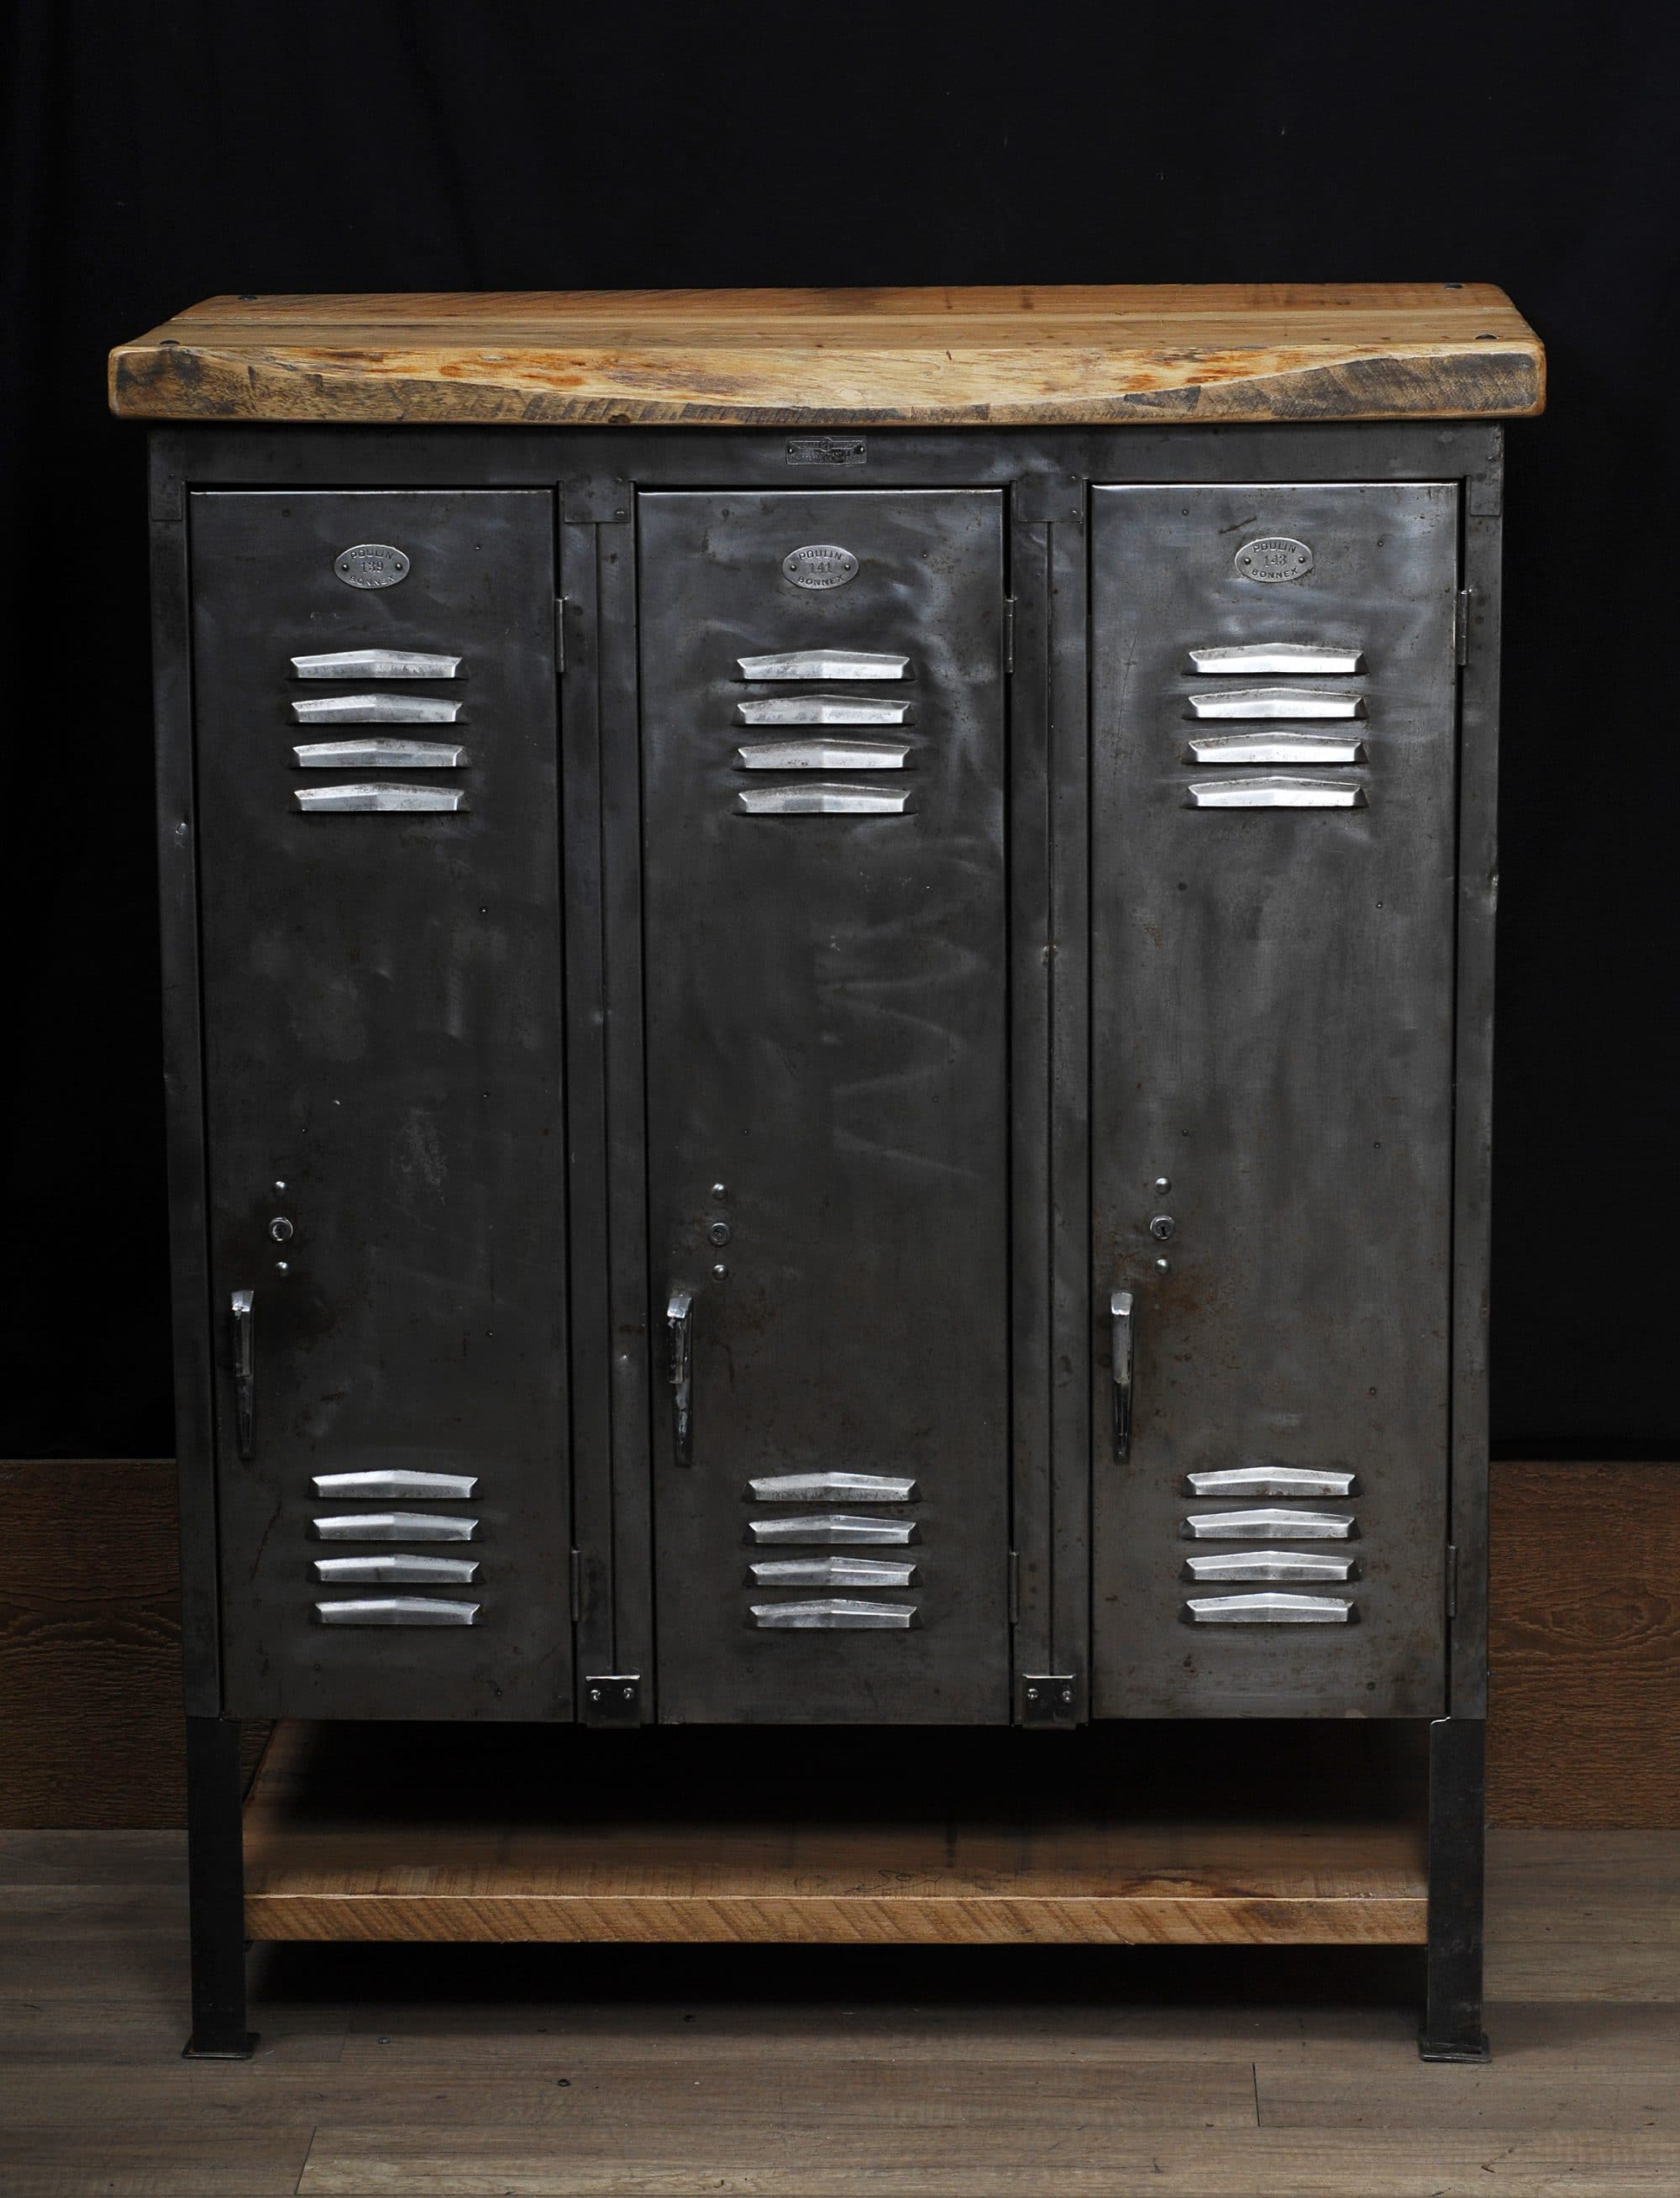 cabinet de rangement casier antique industrial storage unit old locker 2 chance deco. Black Bedroom Furniture Sets. Home Design Ideas